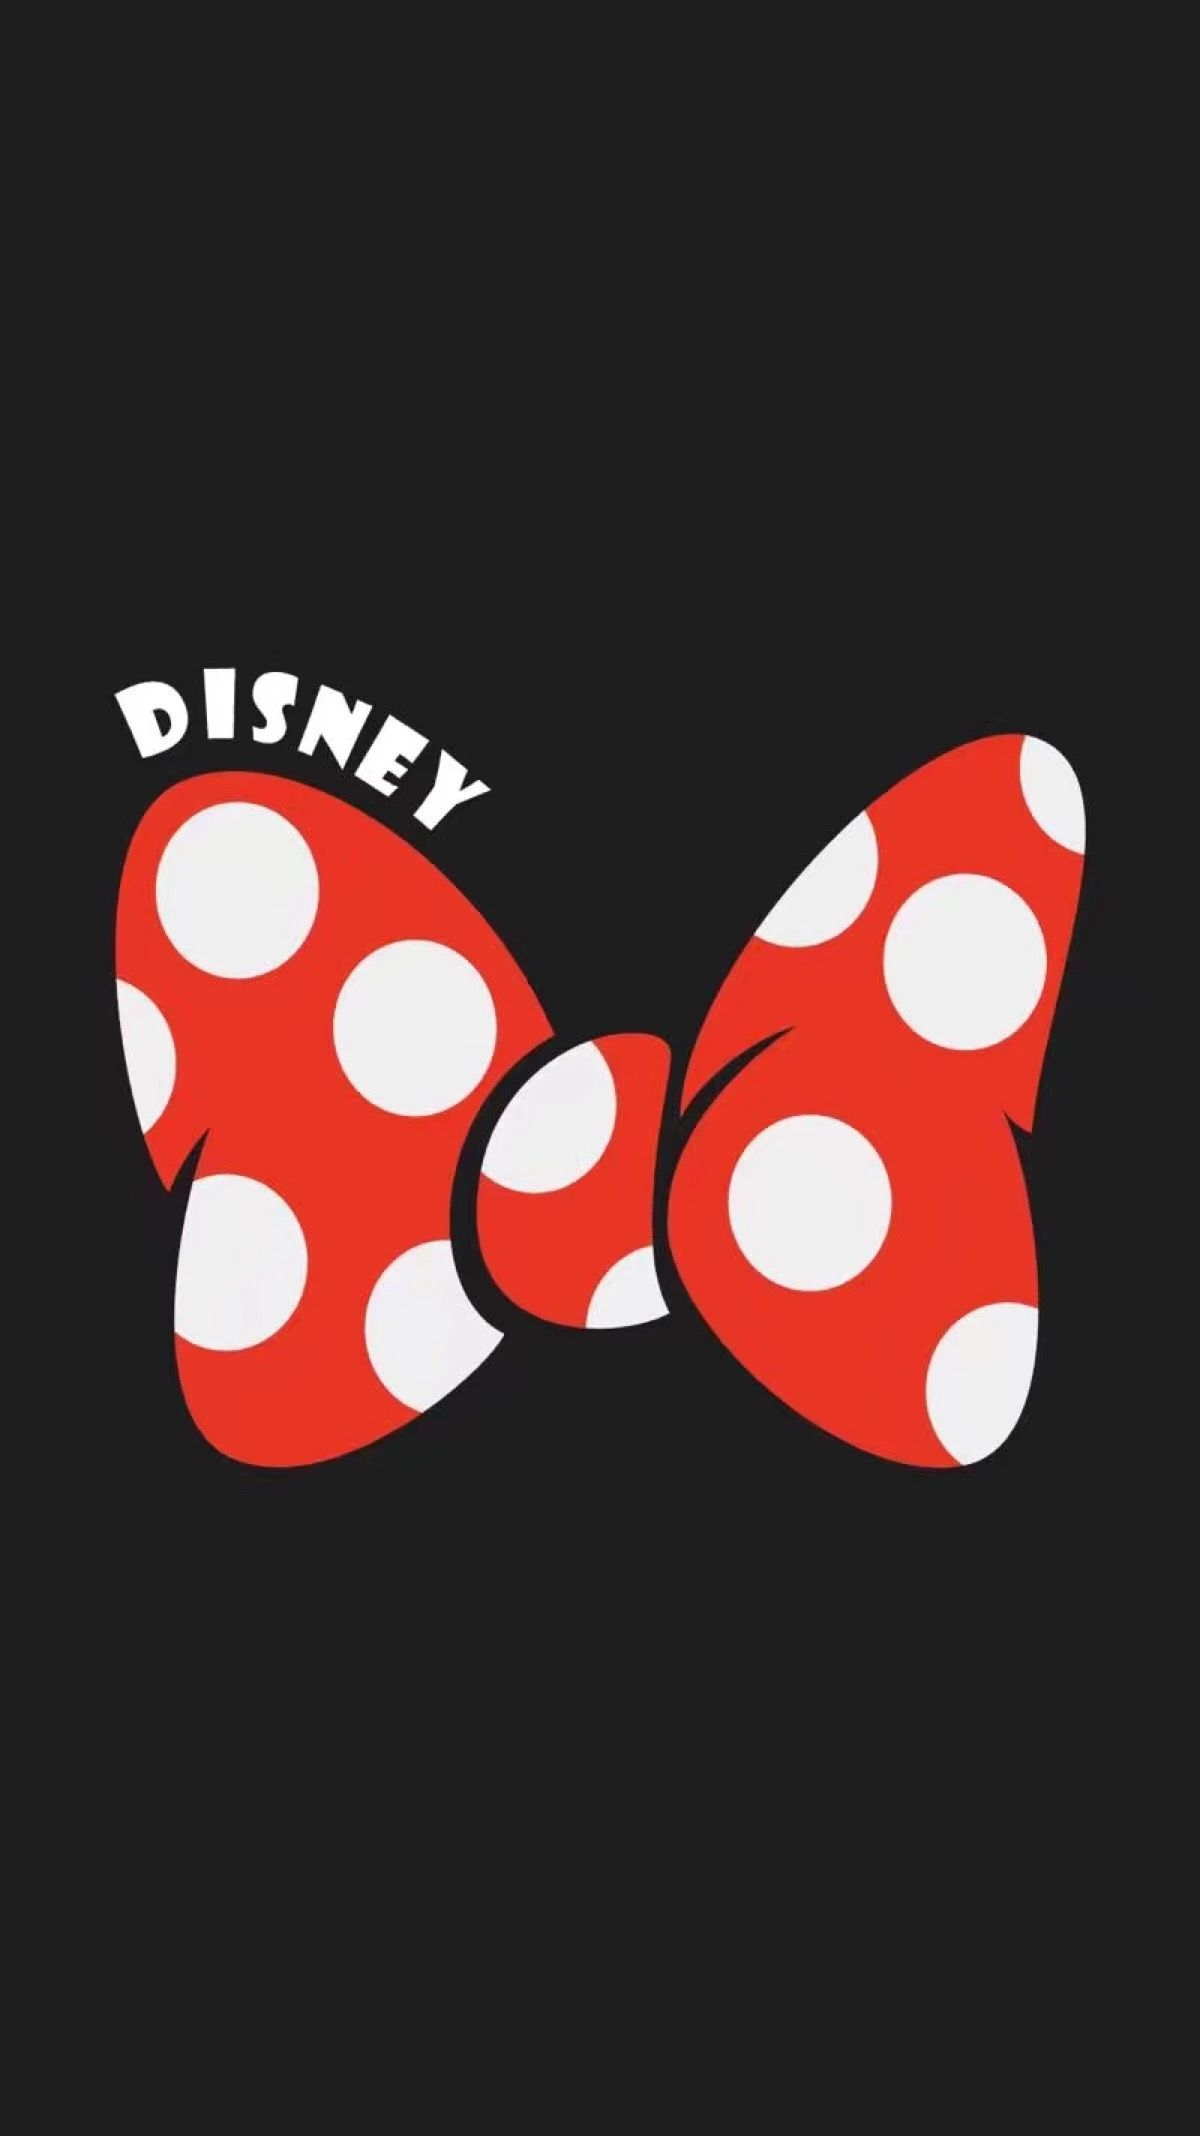 Mickey Minnie Mouse Iphone Wallpapers Top Free Mickey Minnie Mouse Iphone Backgrounds Wallpaperaccess